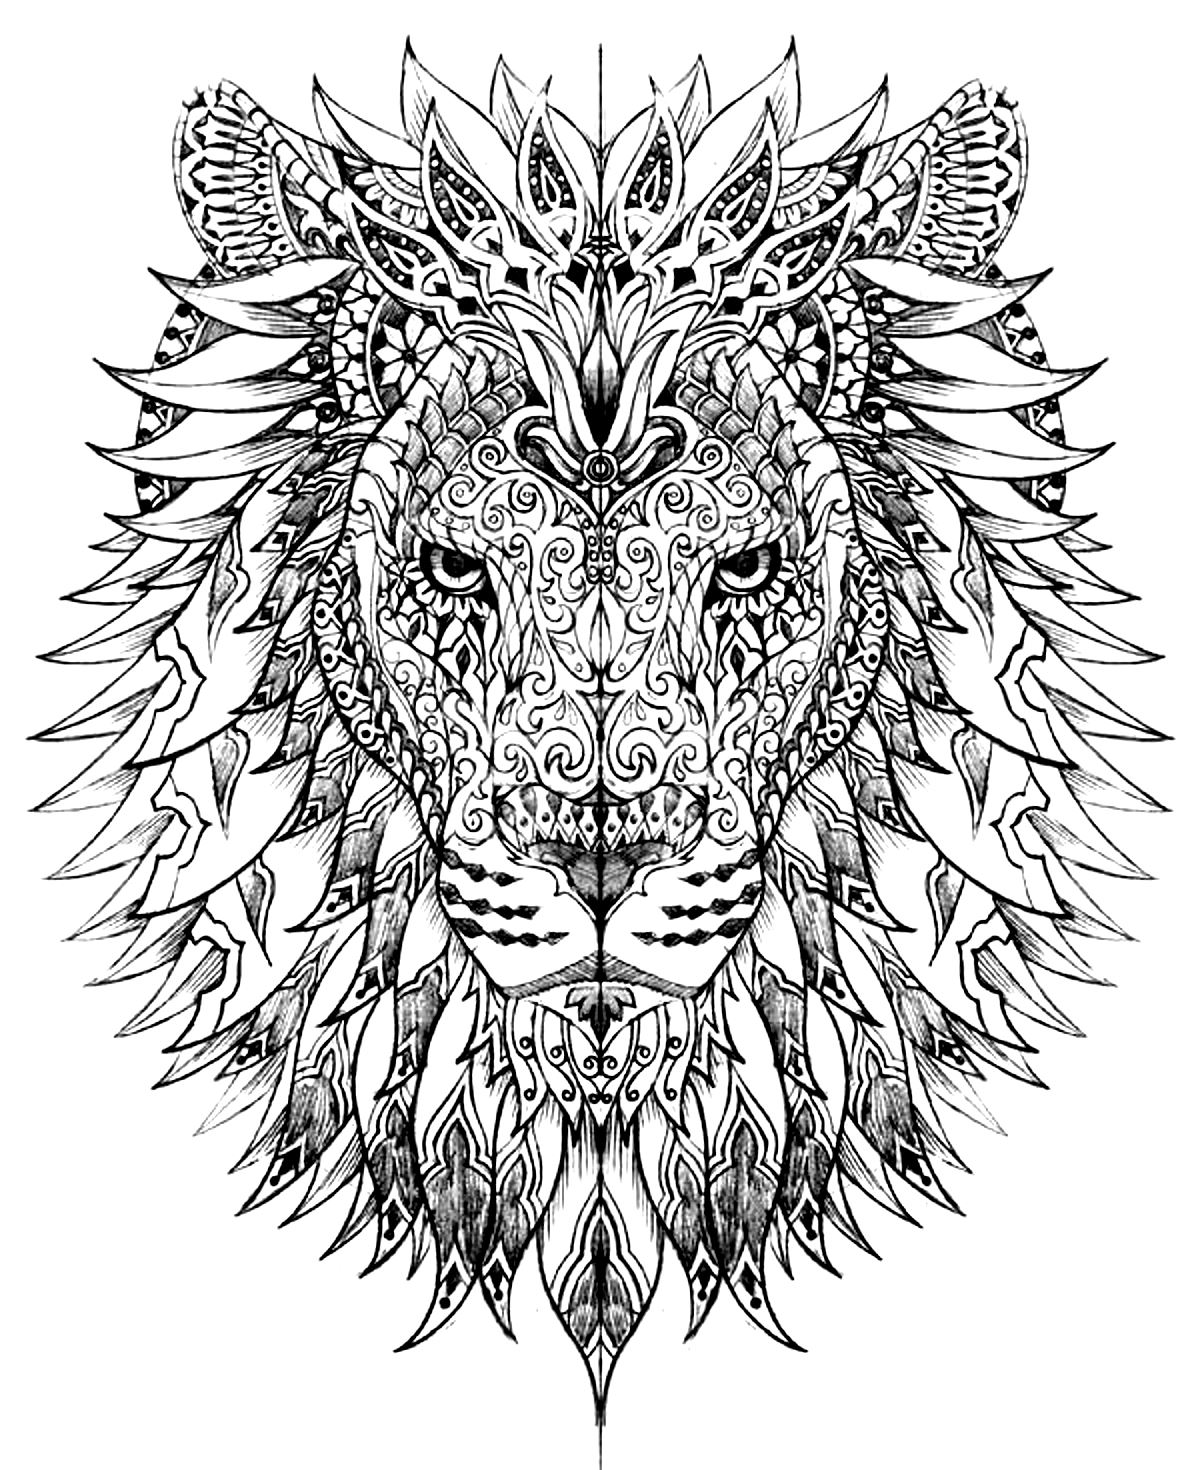 Lion head drawn with very smart and harmonious patterns | From the gallery : Animals